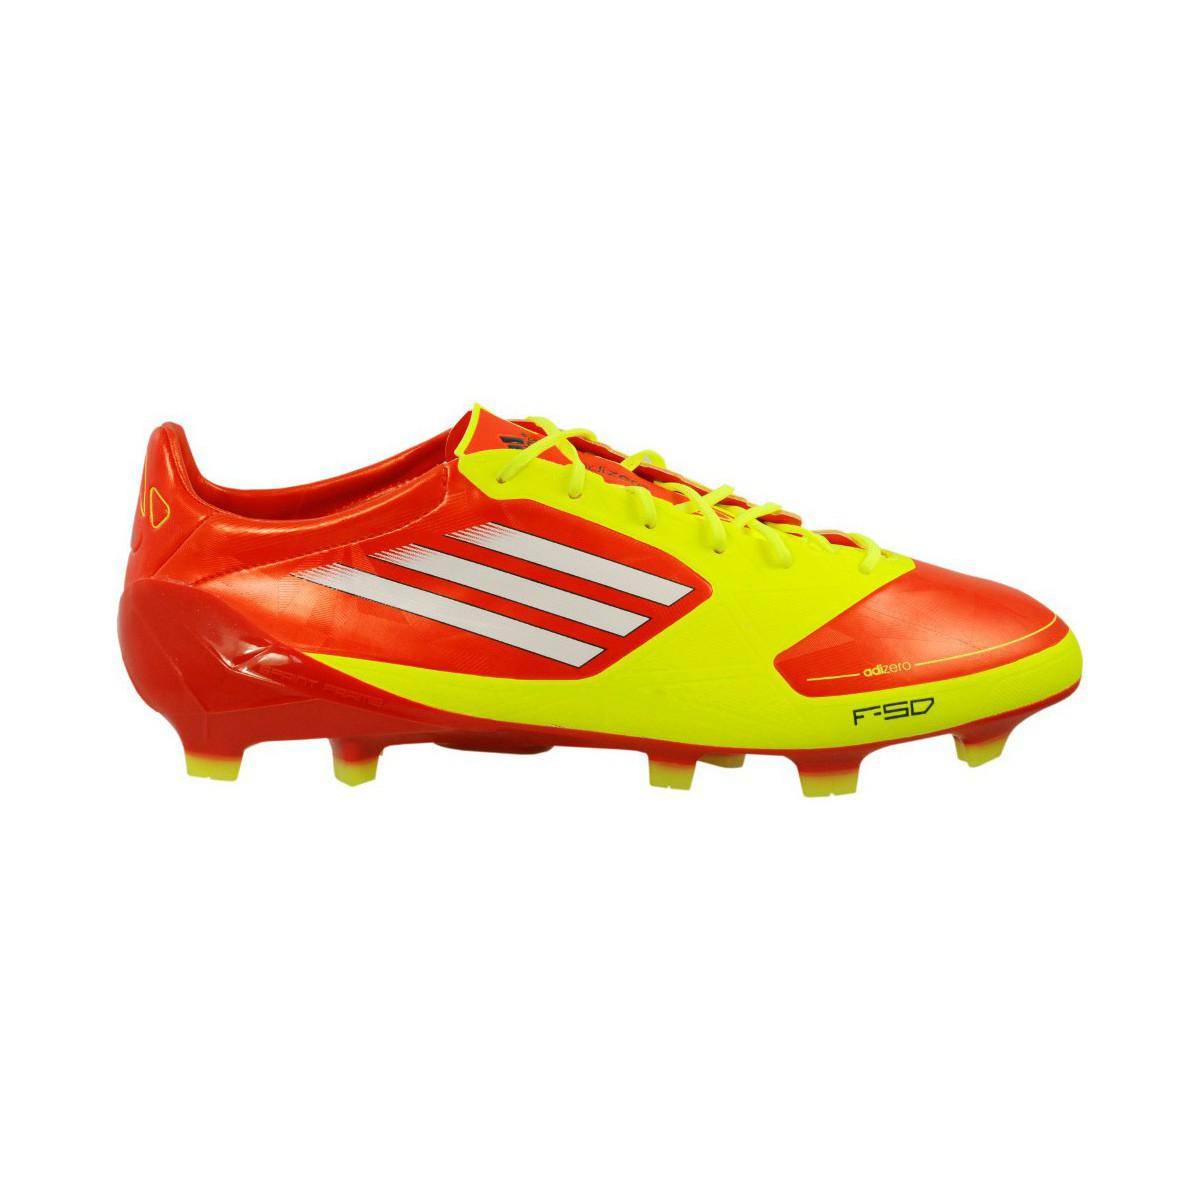 d2ef3f4ec4d adidas F50 Adizero Trx Fg Men s Football Boots In Red in Red for Men ...